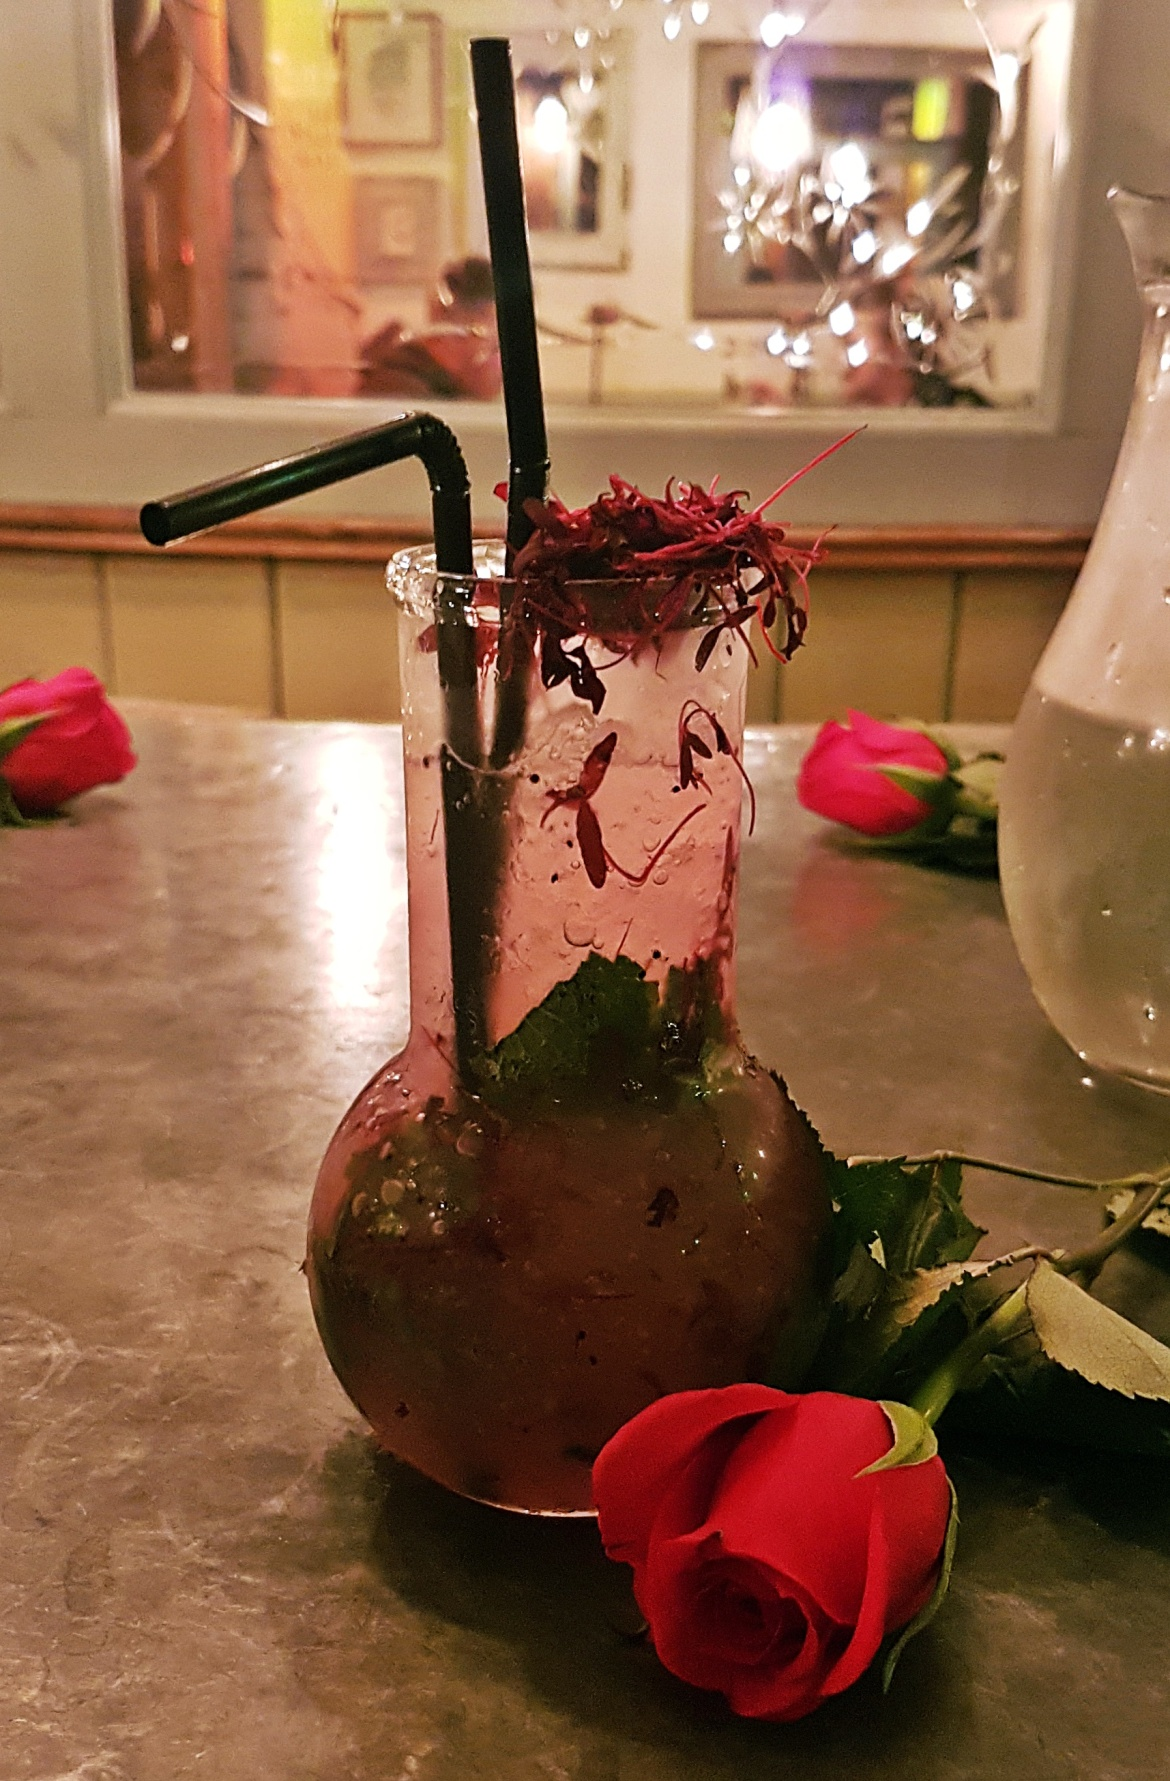 The Botanist cocktail - Gin Masterclass at the Botanist Leeds, review by BeckyBecky Blogs